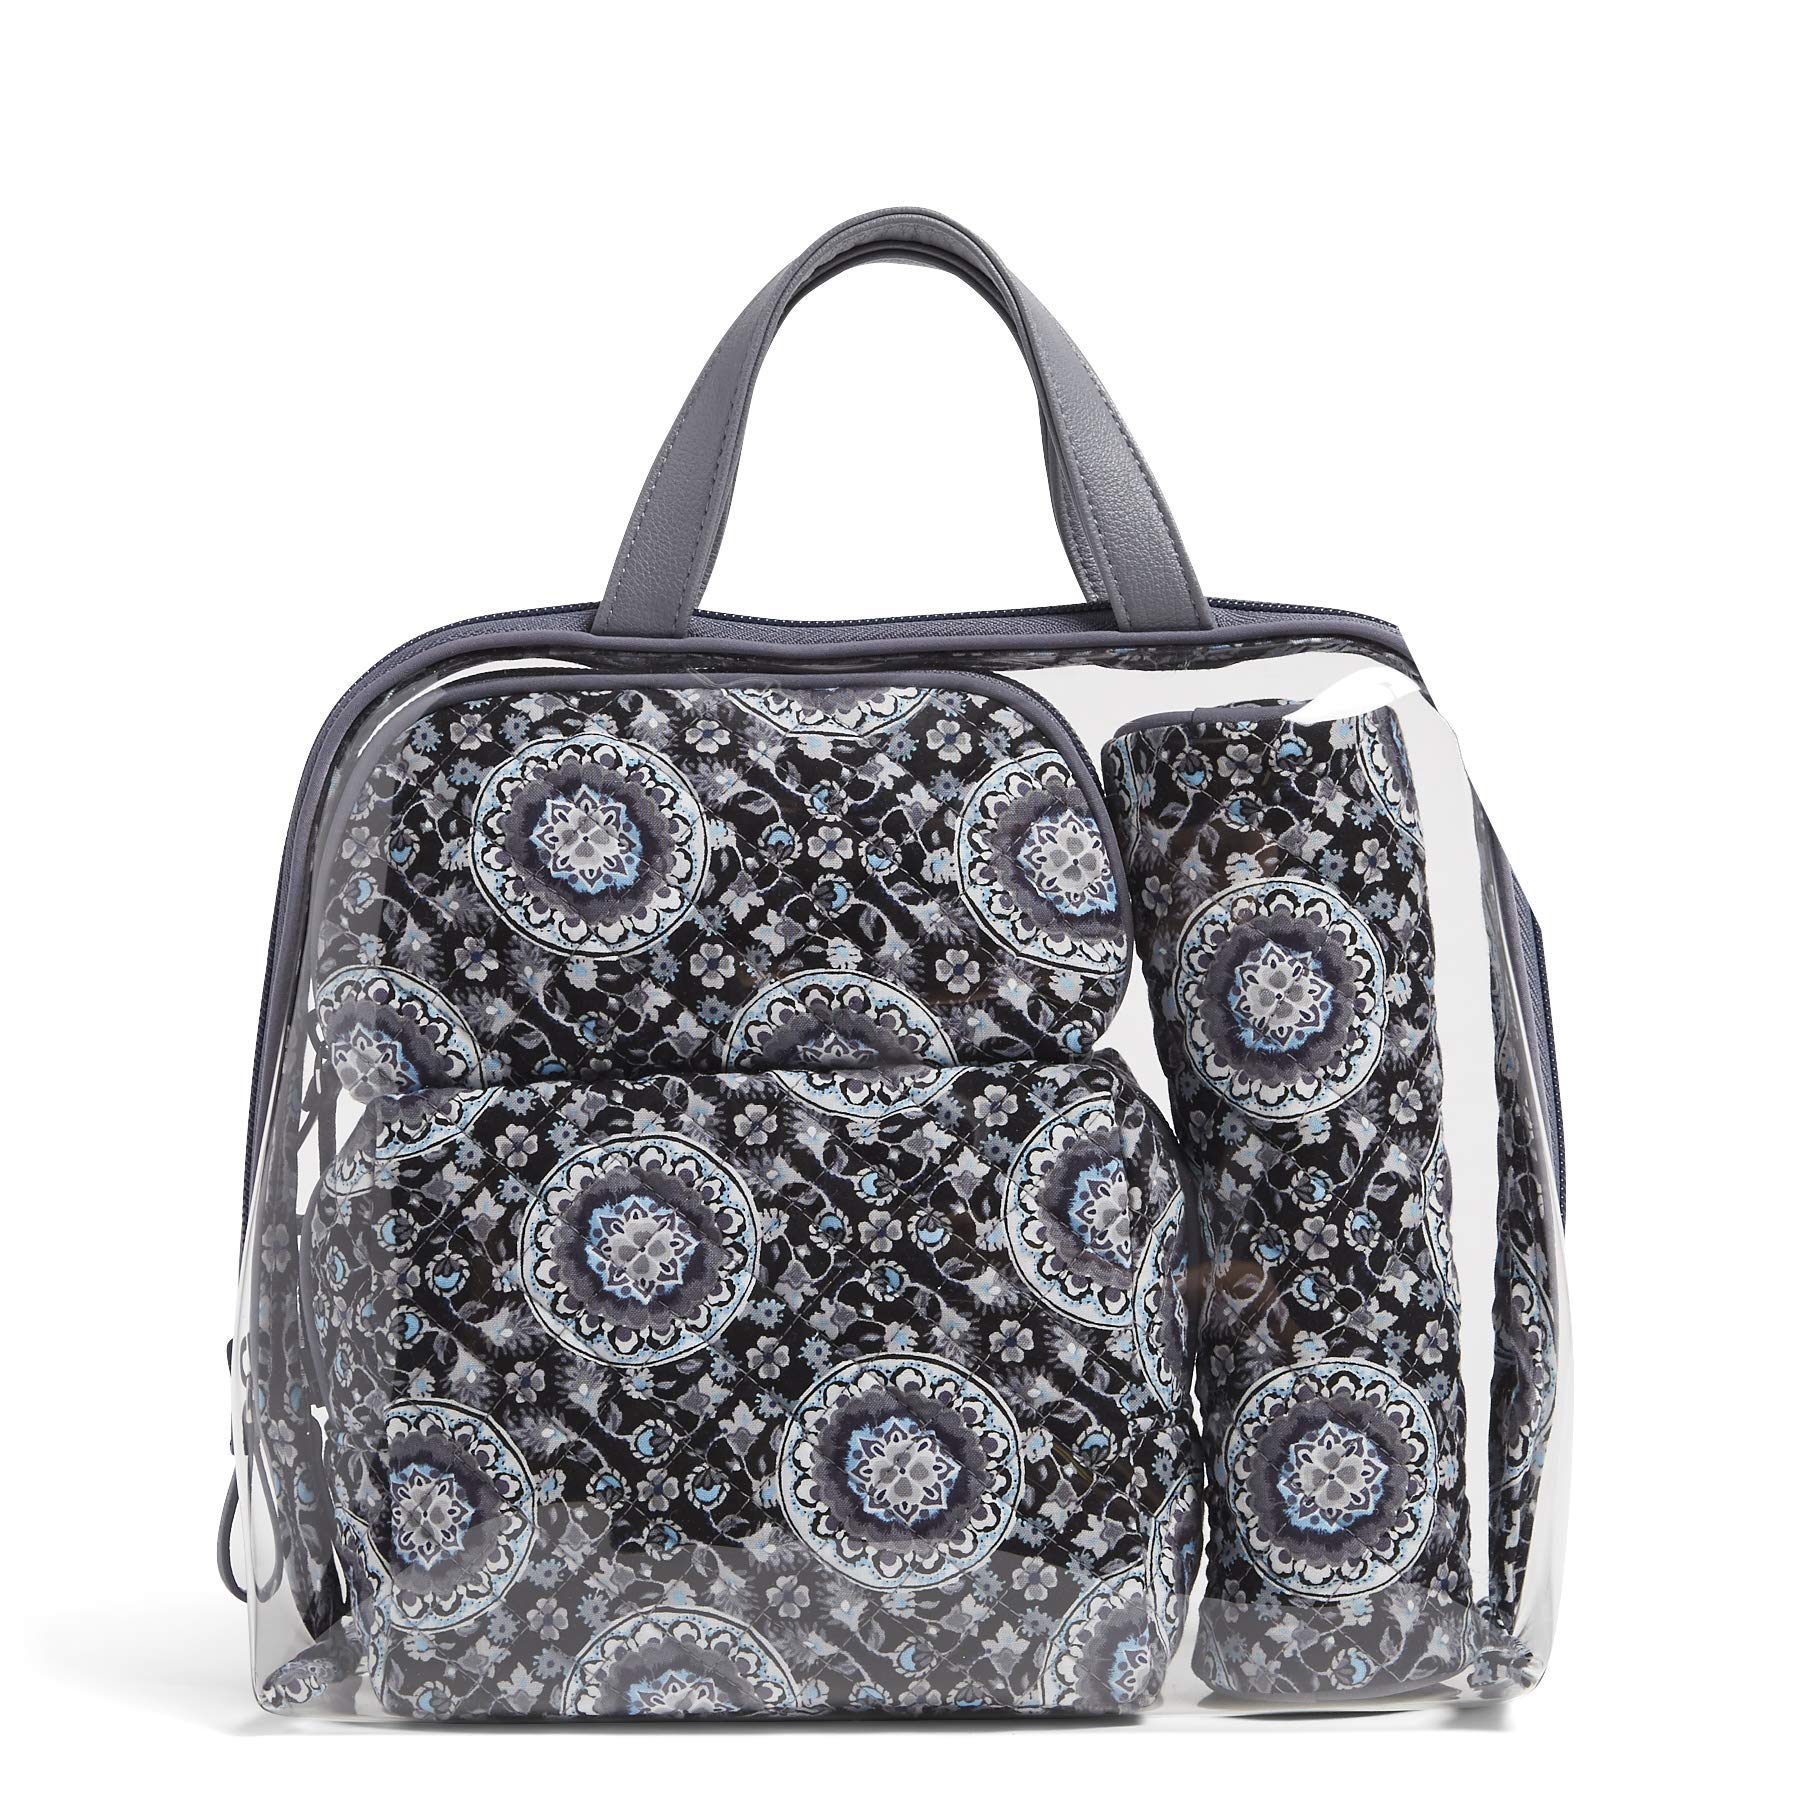 Vera Bradley Iconic 4 Pc. Cosmetic Set, Charcoal Medallion, charcoal medallion, One Size